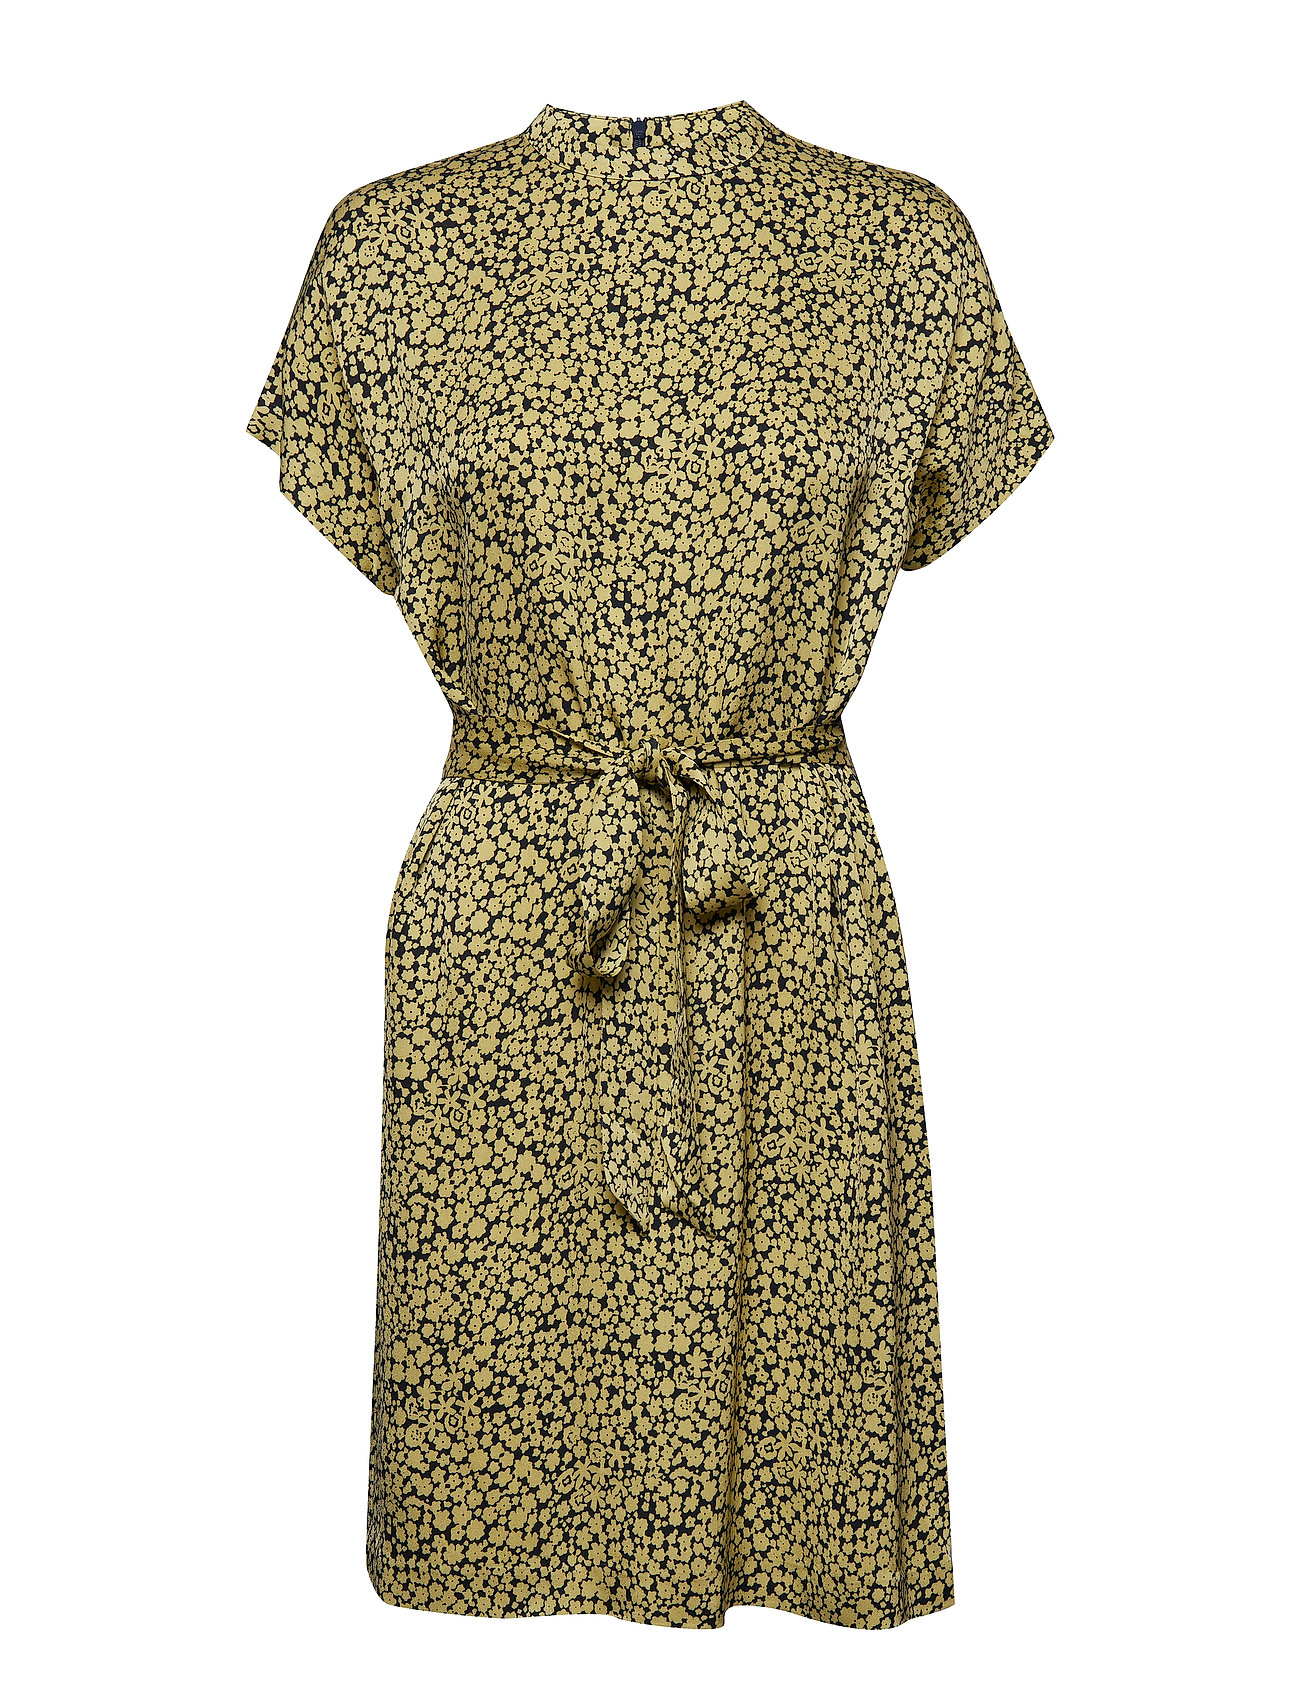 f8d006fa69 Kimberly Ss Dress Aop 8325 (Yellow Buttercup) (£84) - Samsøe ...